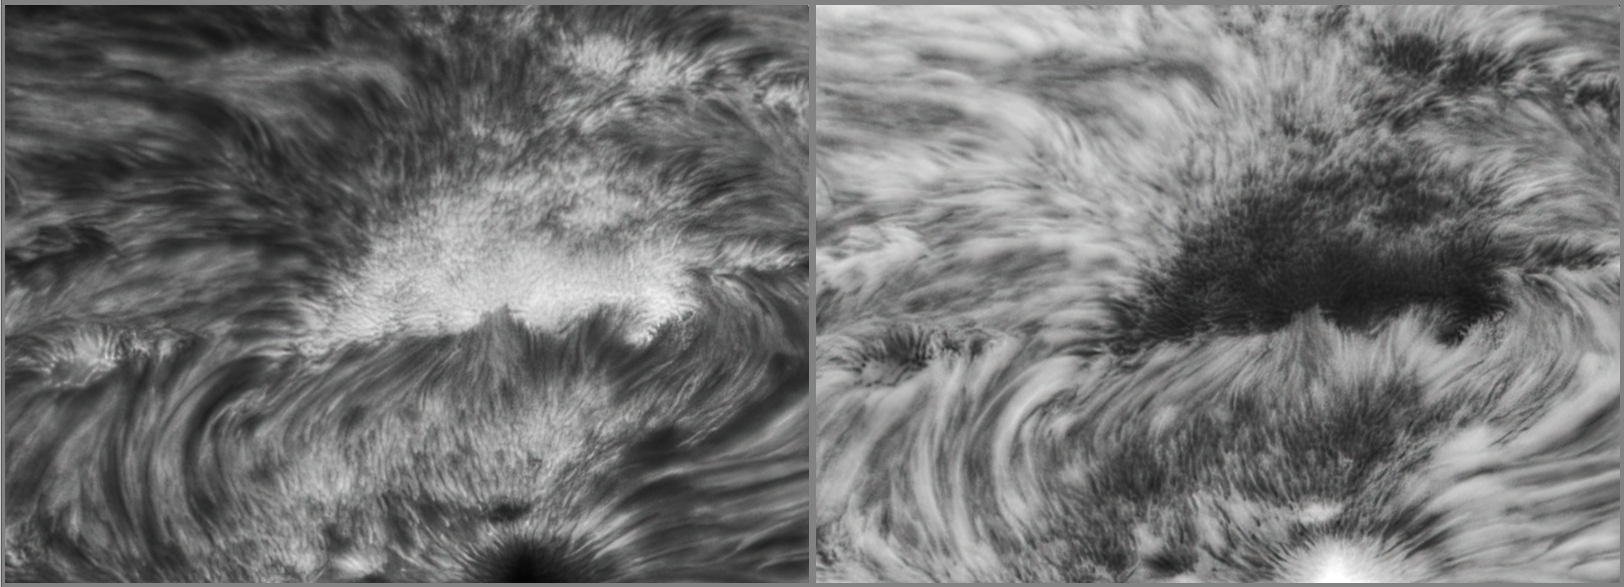 AR2824 Detail 1.png